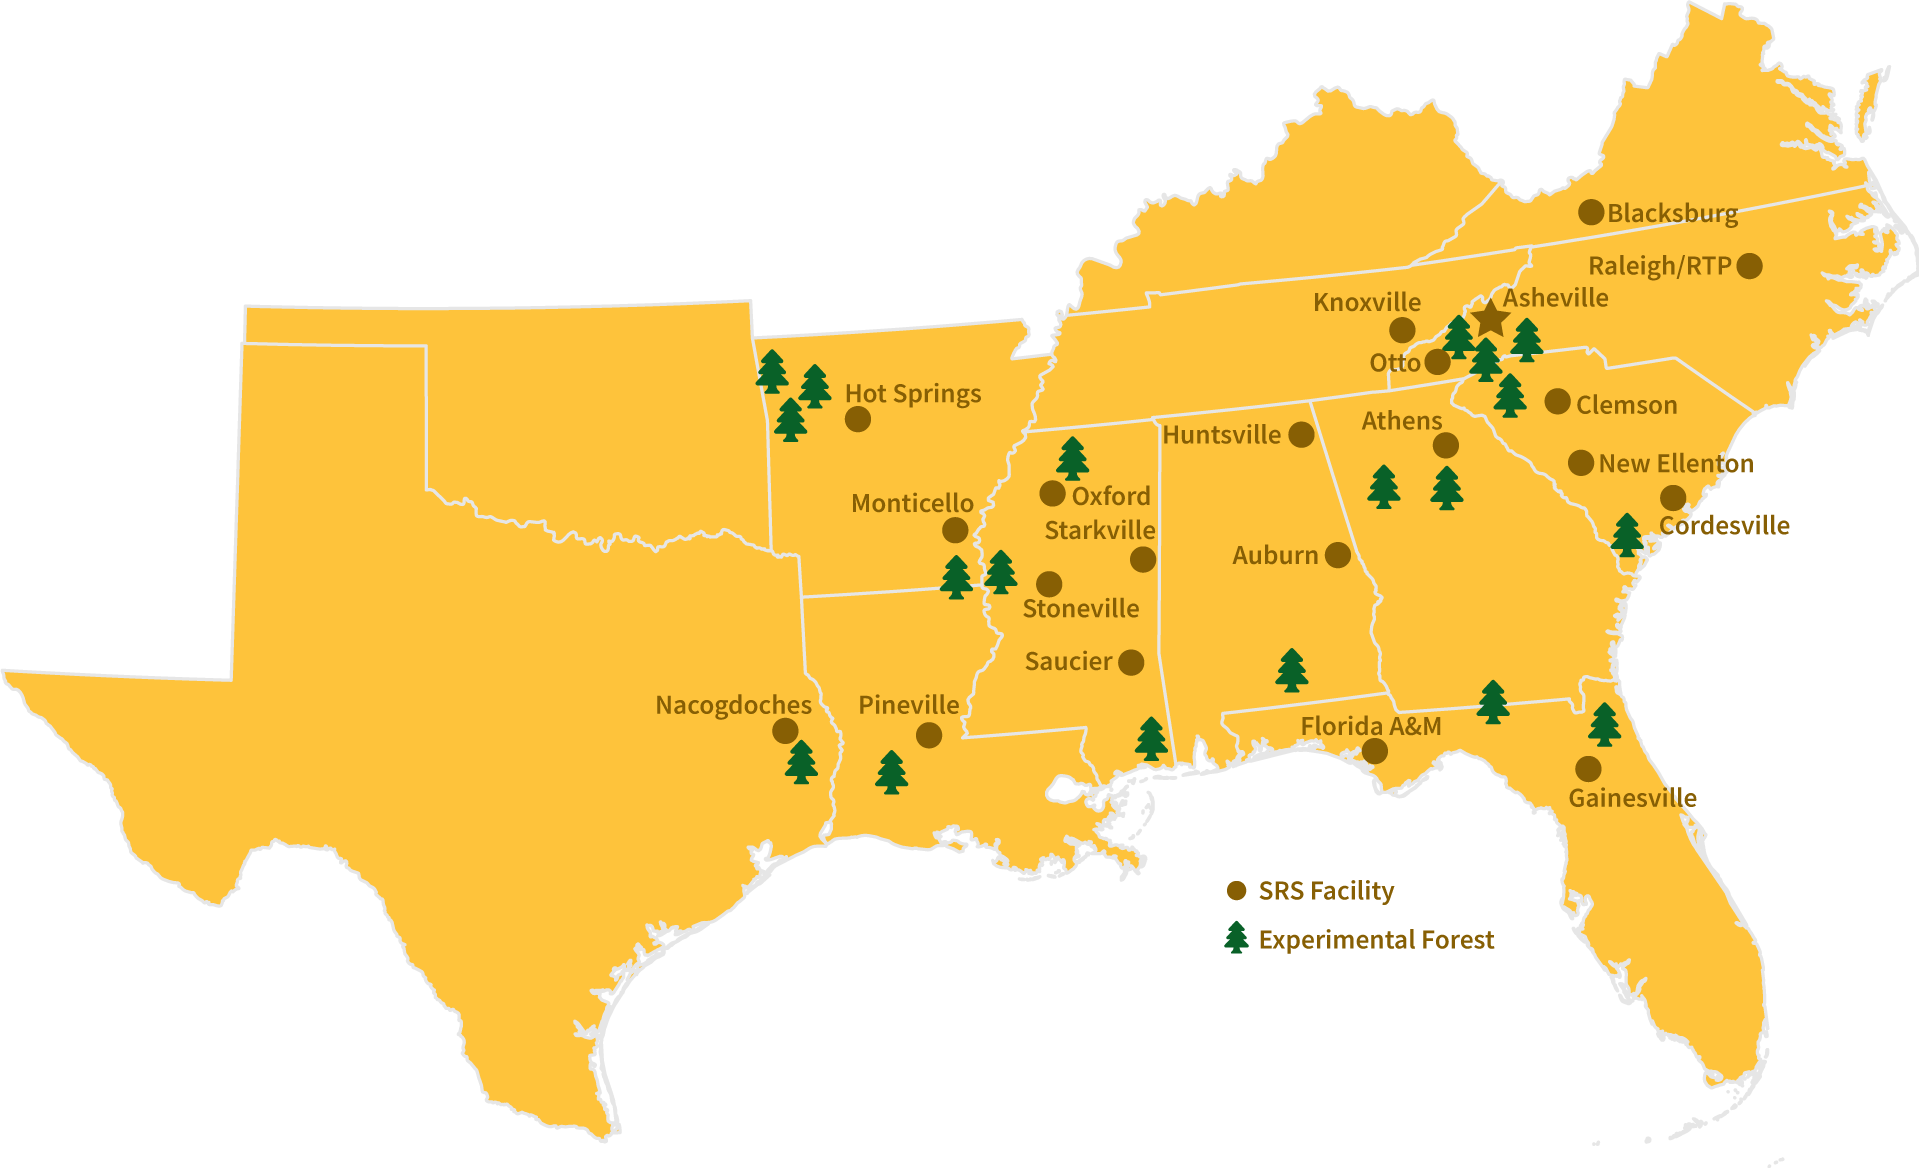 Map of the Southern United States showing Southern Research Station research unit and experimental forest locations